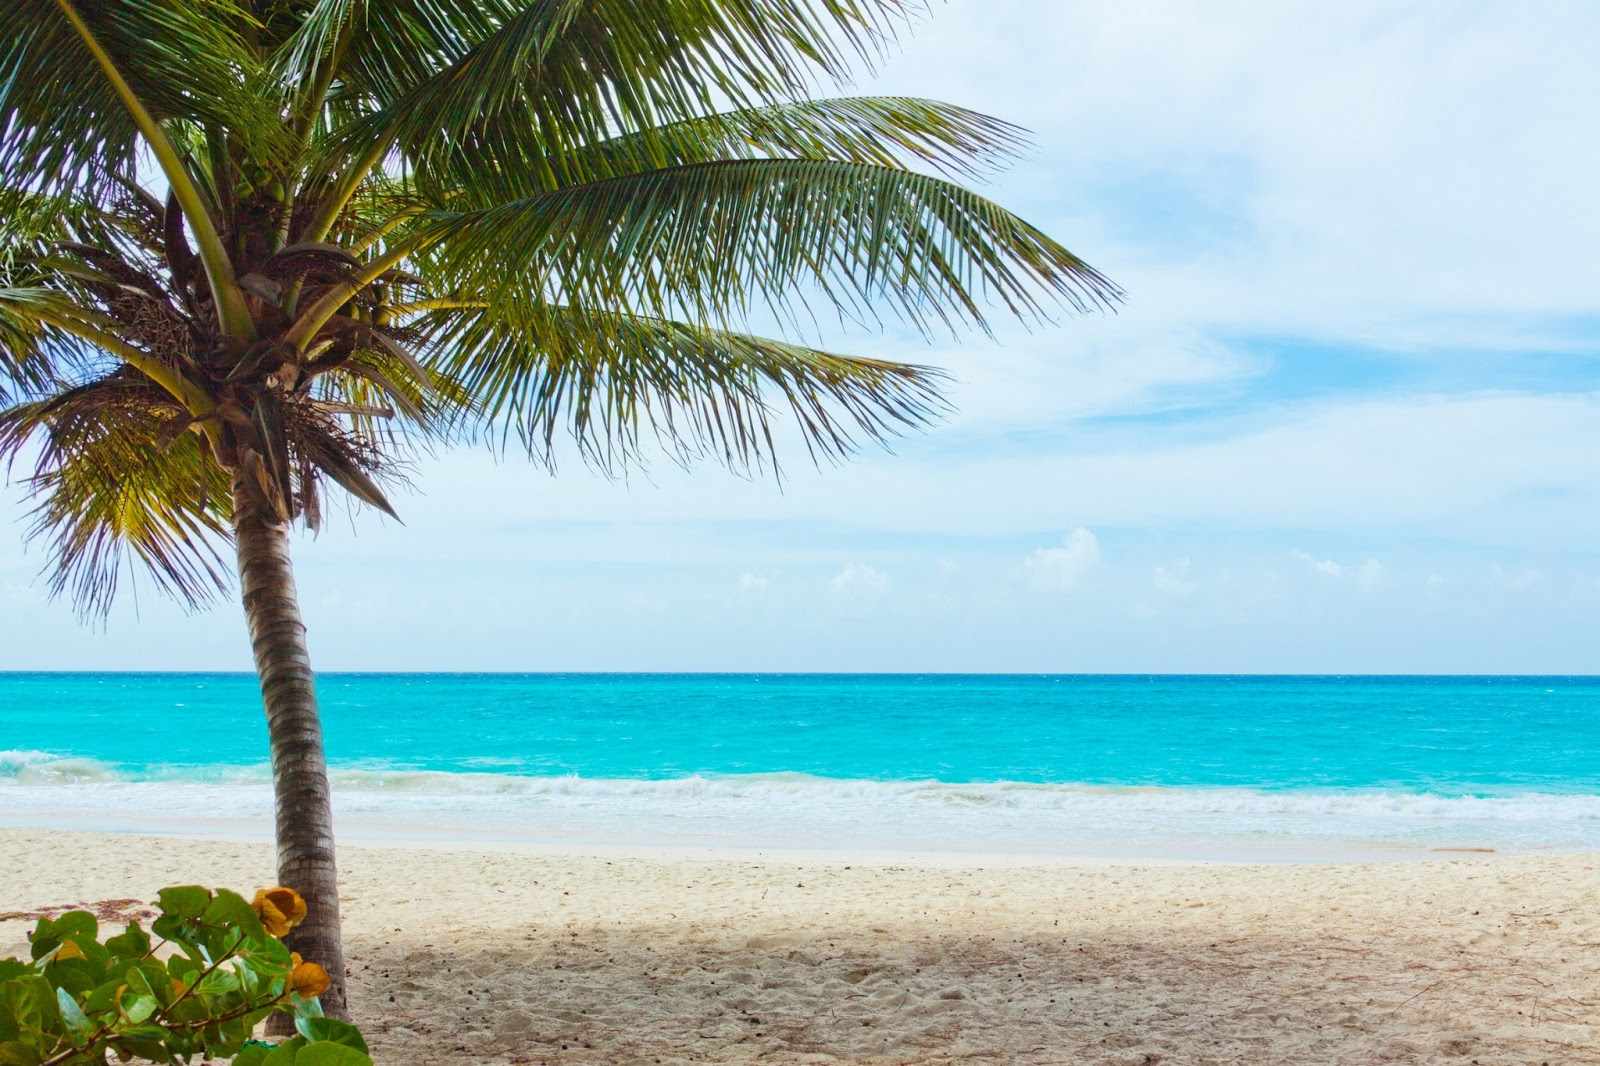 pippi 39 s blog pictures of palm trees on the beach. Black Bedroom Furniture Sets. Home Design Ideas